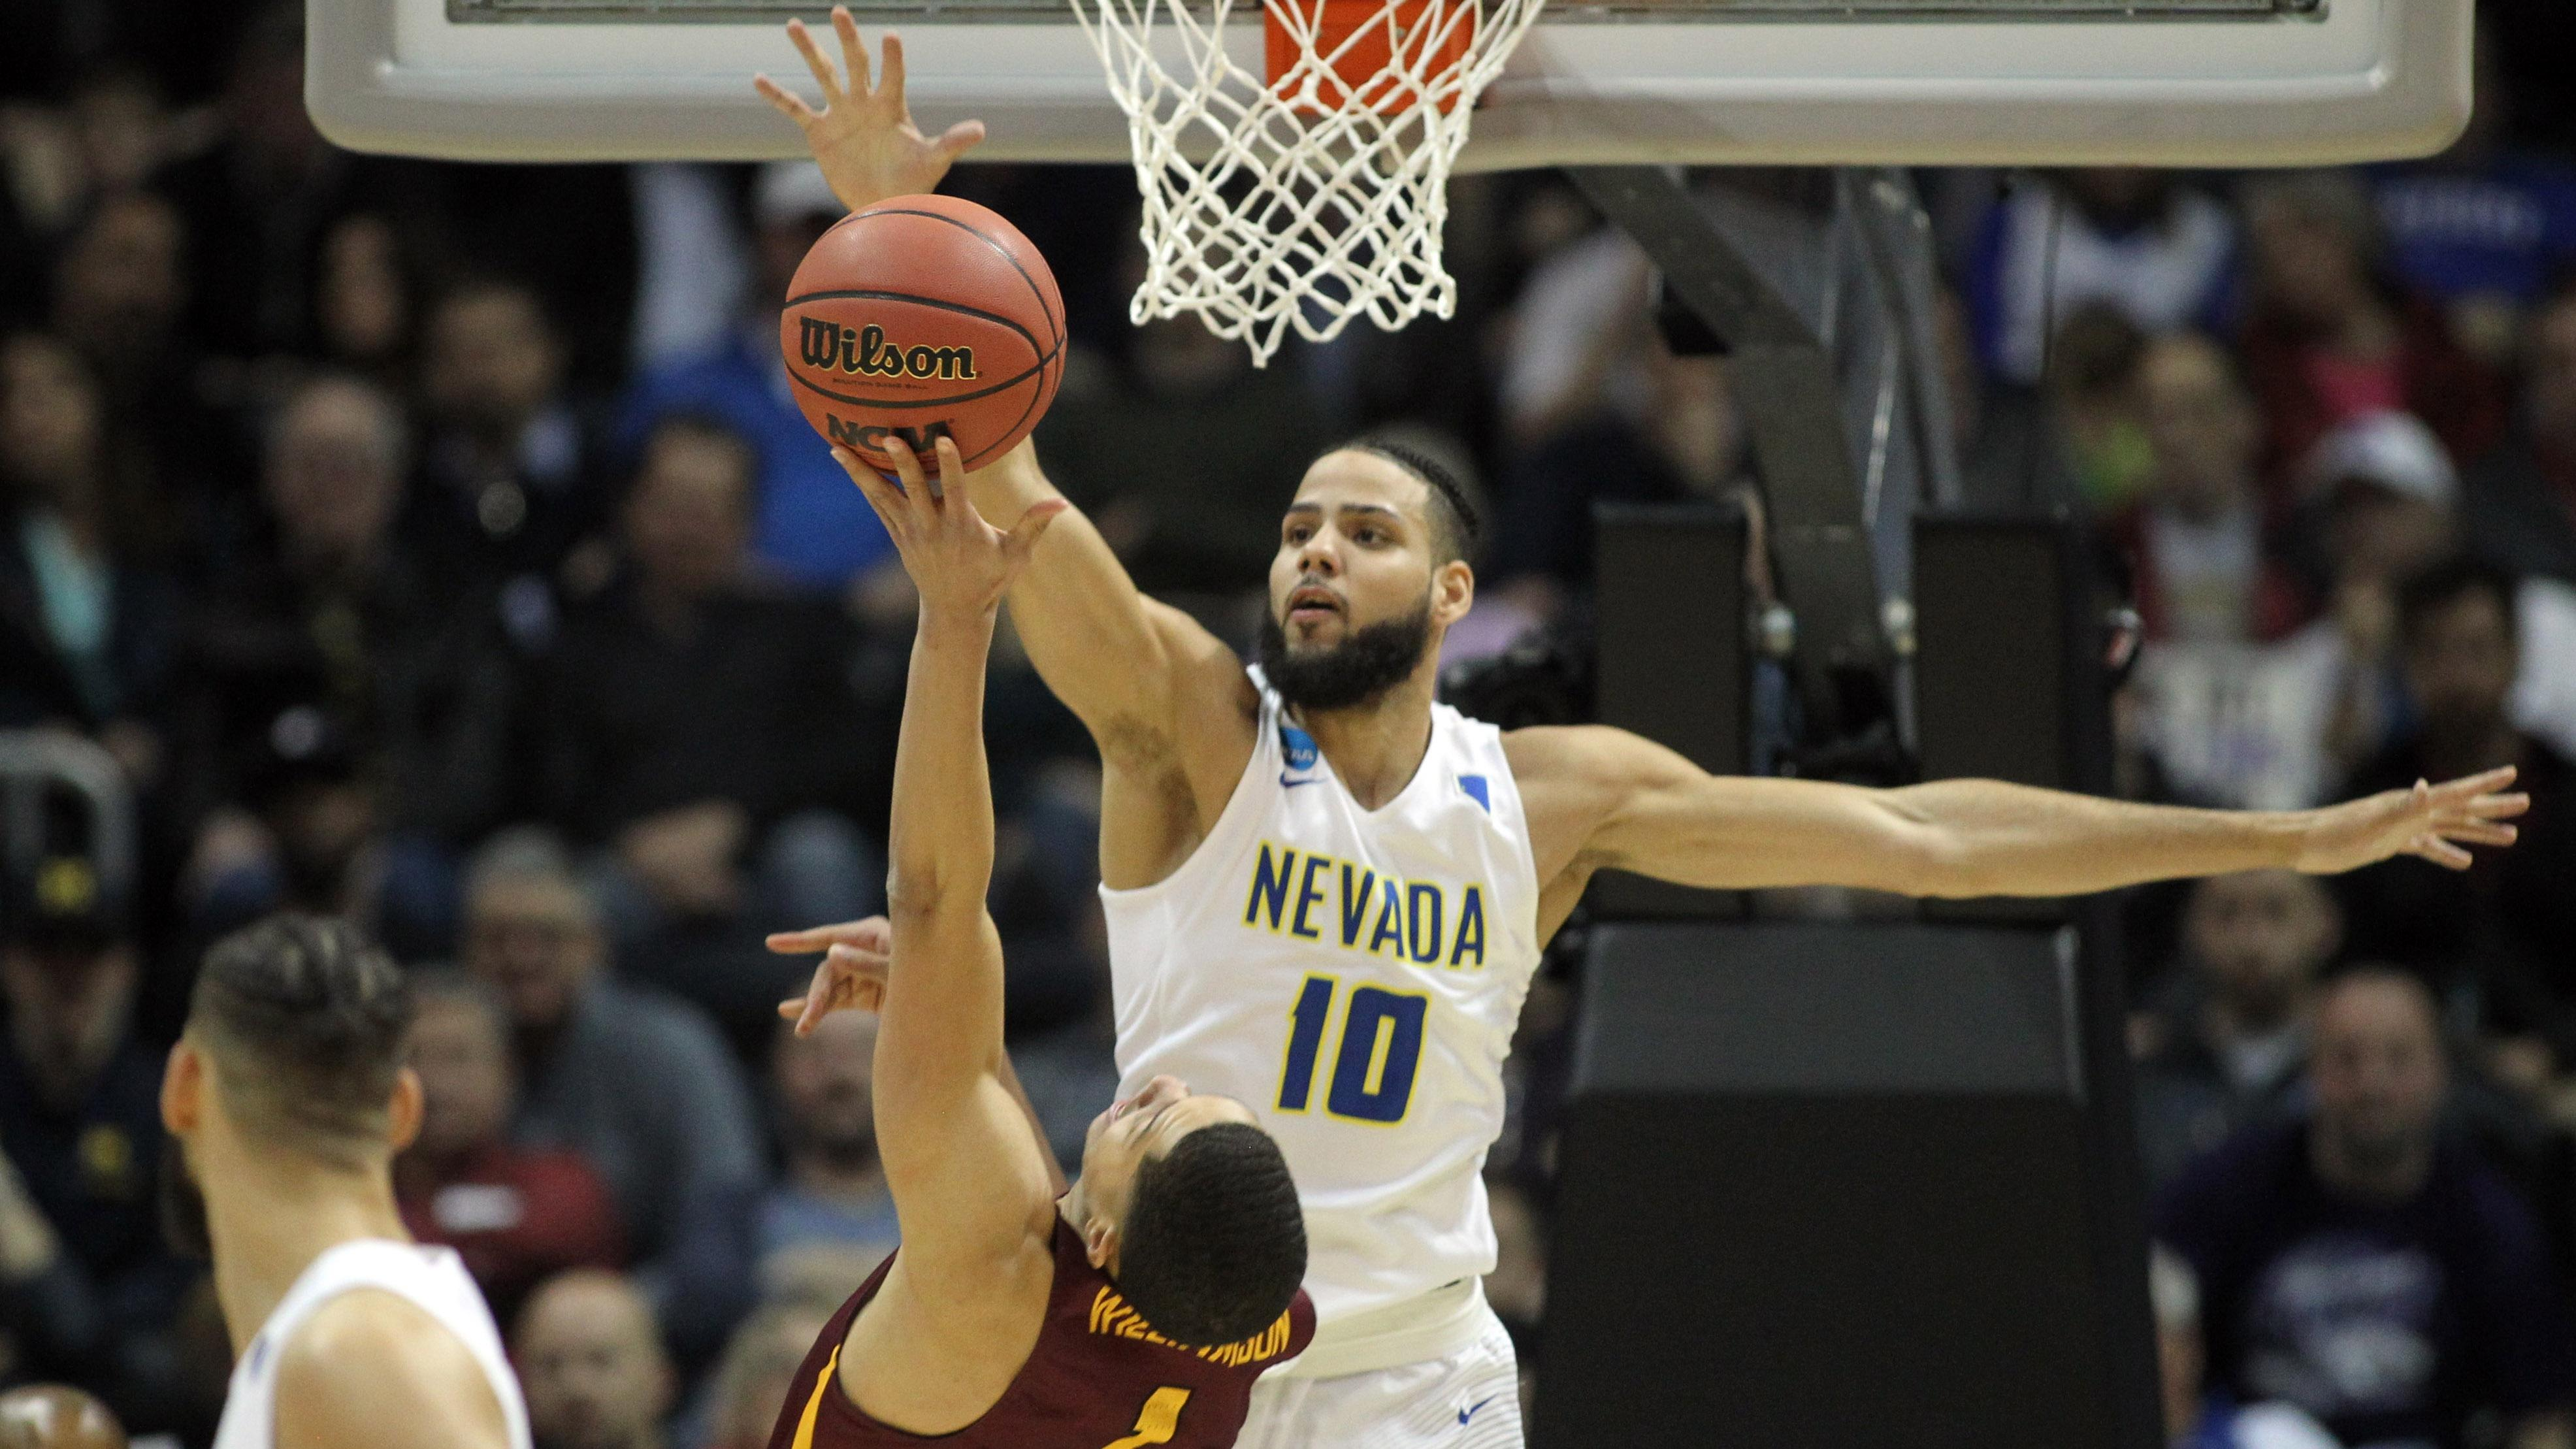 Nevada's Caleb Martin blocks a shot